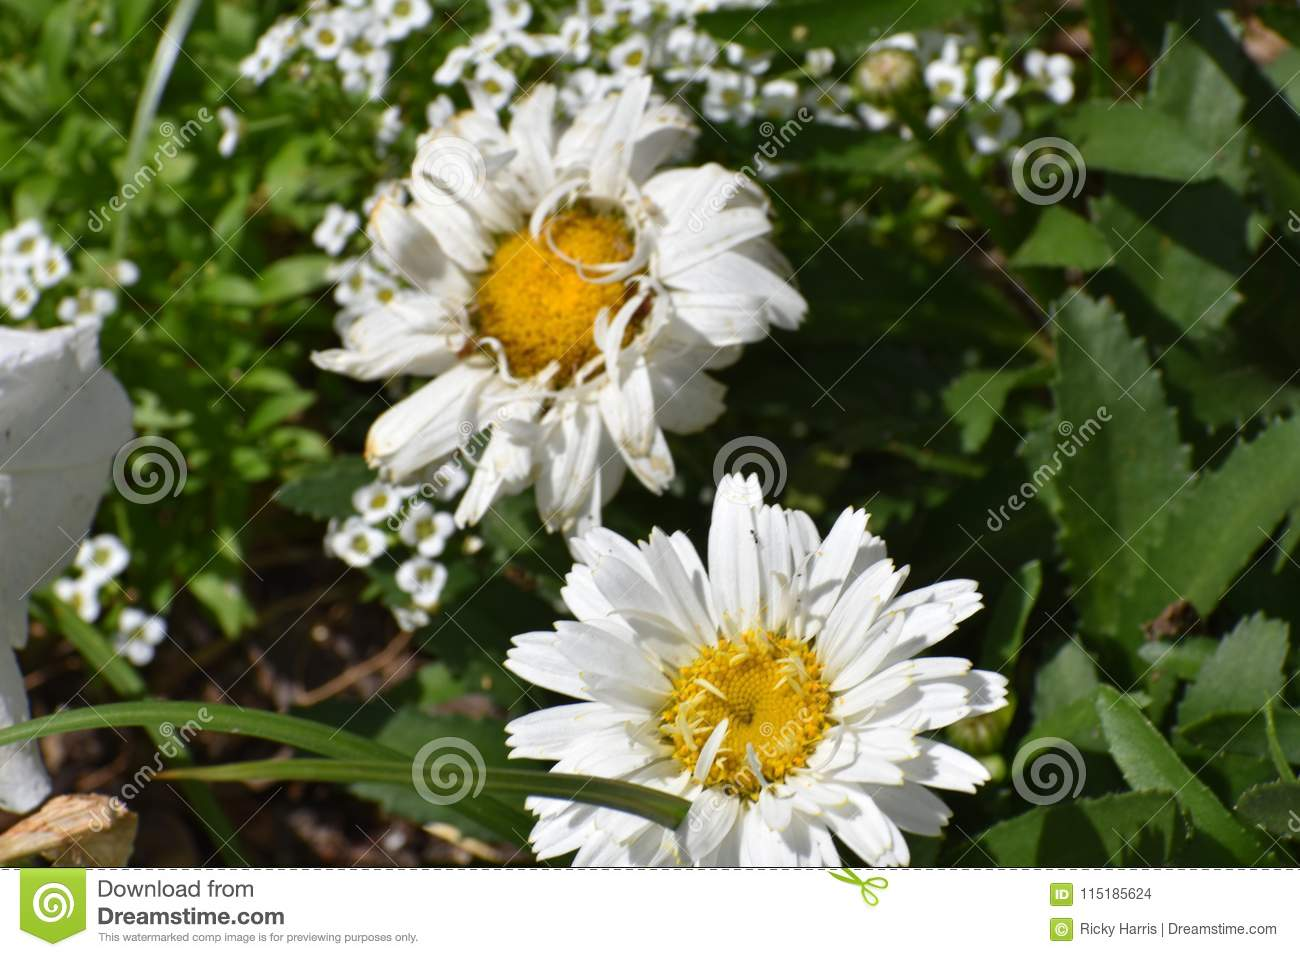 Two yellow centered white flowers in festival stock photo image of download two yellow centered white flowers in festival stock photo image of stem clusters mightylinksfo